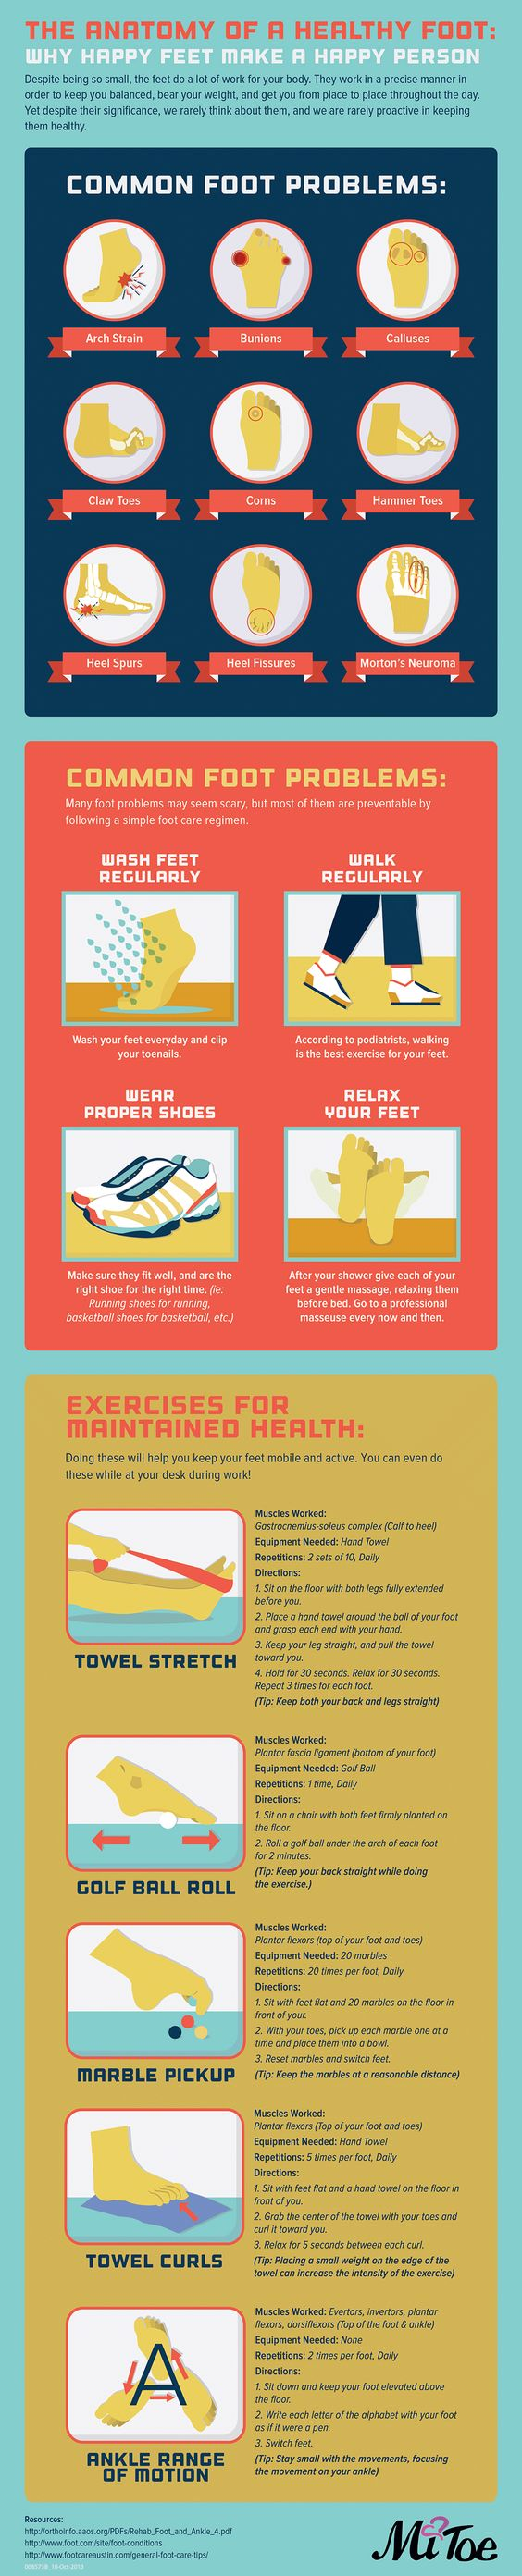 Infographic: The Anatomy of a Healthy Foot: